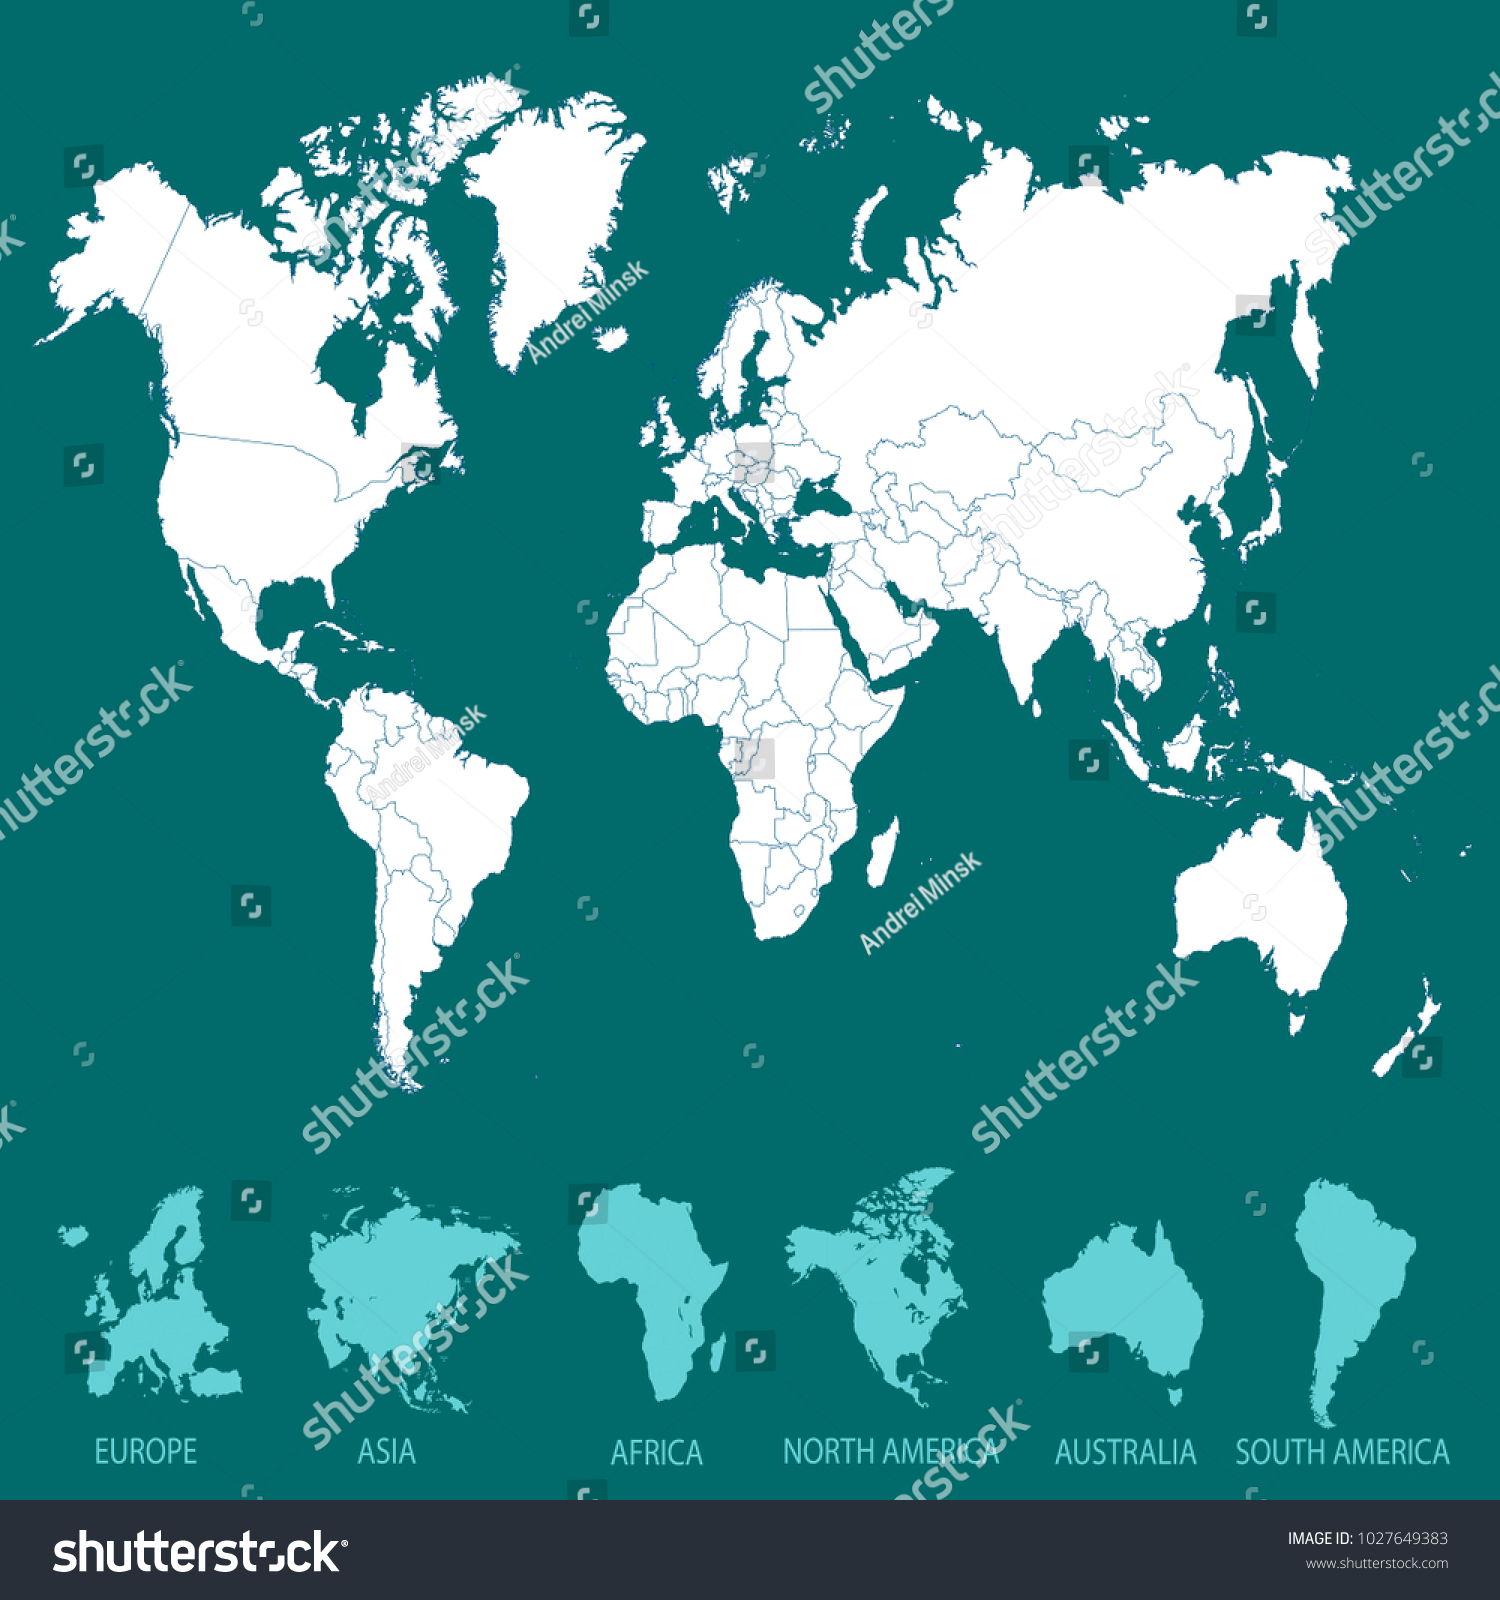 World map europe asia america africa vector de stock1027649383 world map europe asia america africa vector de stock1027649383 shutterstock gumiabroncs Gallery